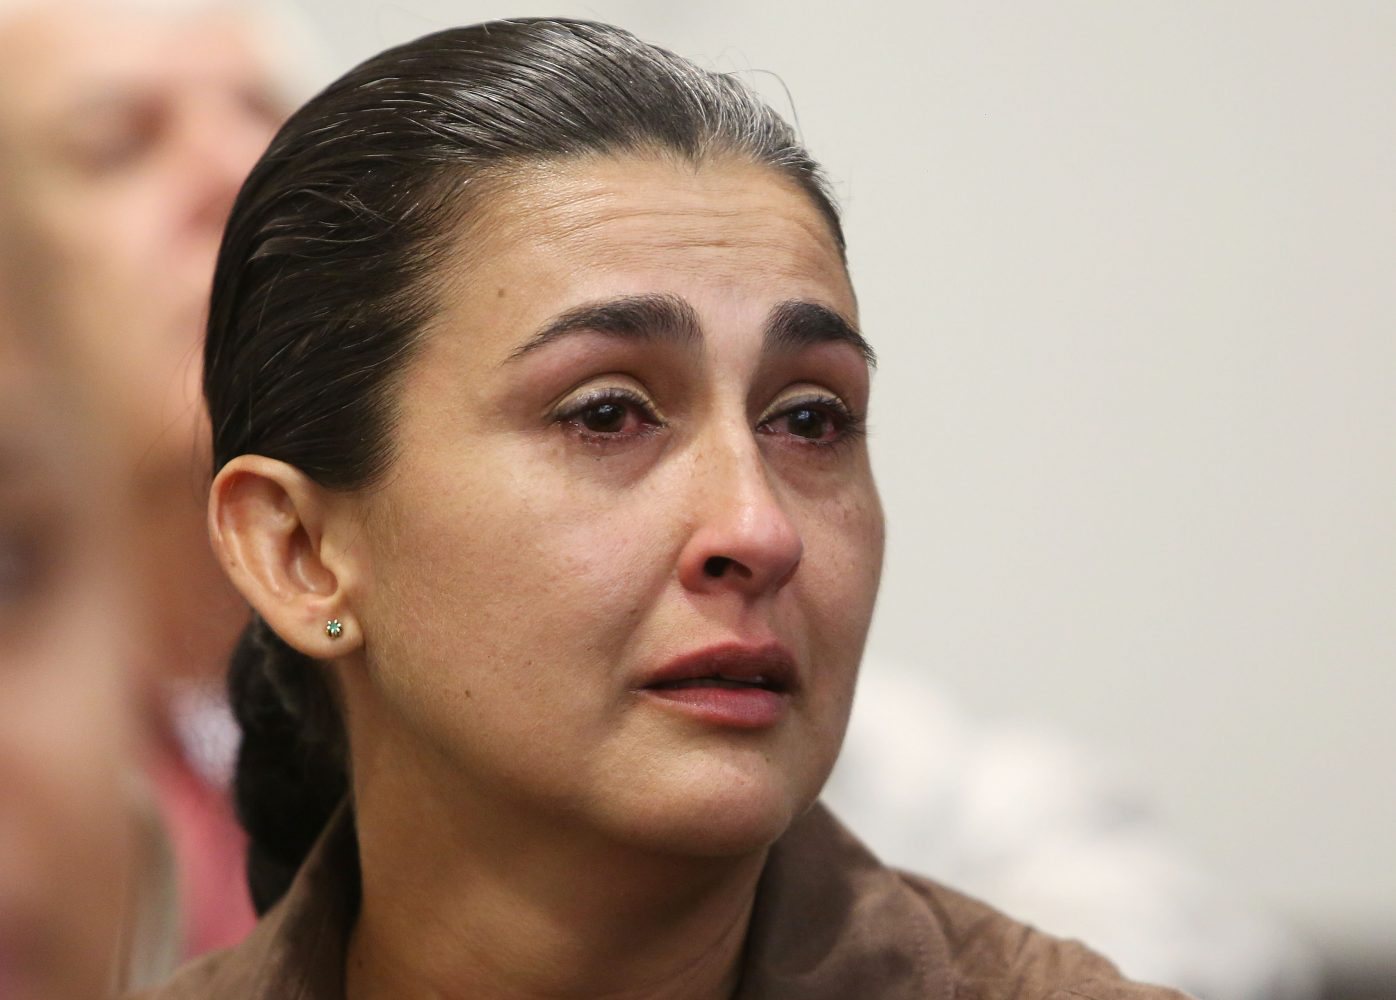 Claudia Aguilar, the mother of slain University of Florida student Christian Aguilar, listens as a guilty verdict is read to Pedro Bravo in courtroom 1B of the Alachua County Criminal Justice Center Friday, August 15, 2014.  Bravo was found guilty of first degree murder. (Doug Finger/The Gainesville Sun/Pool)